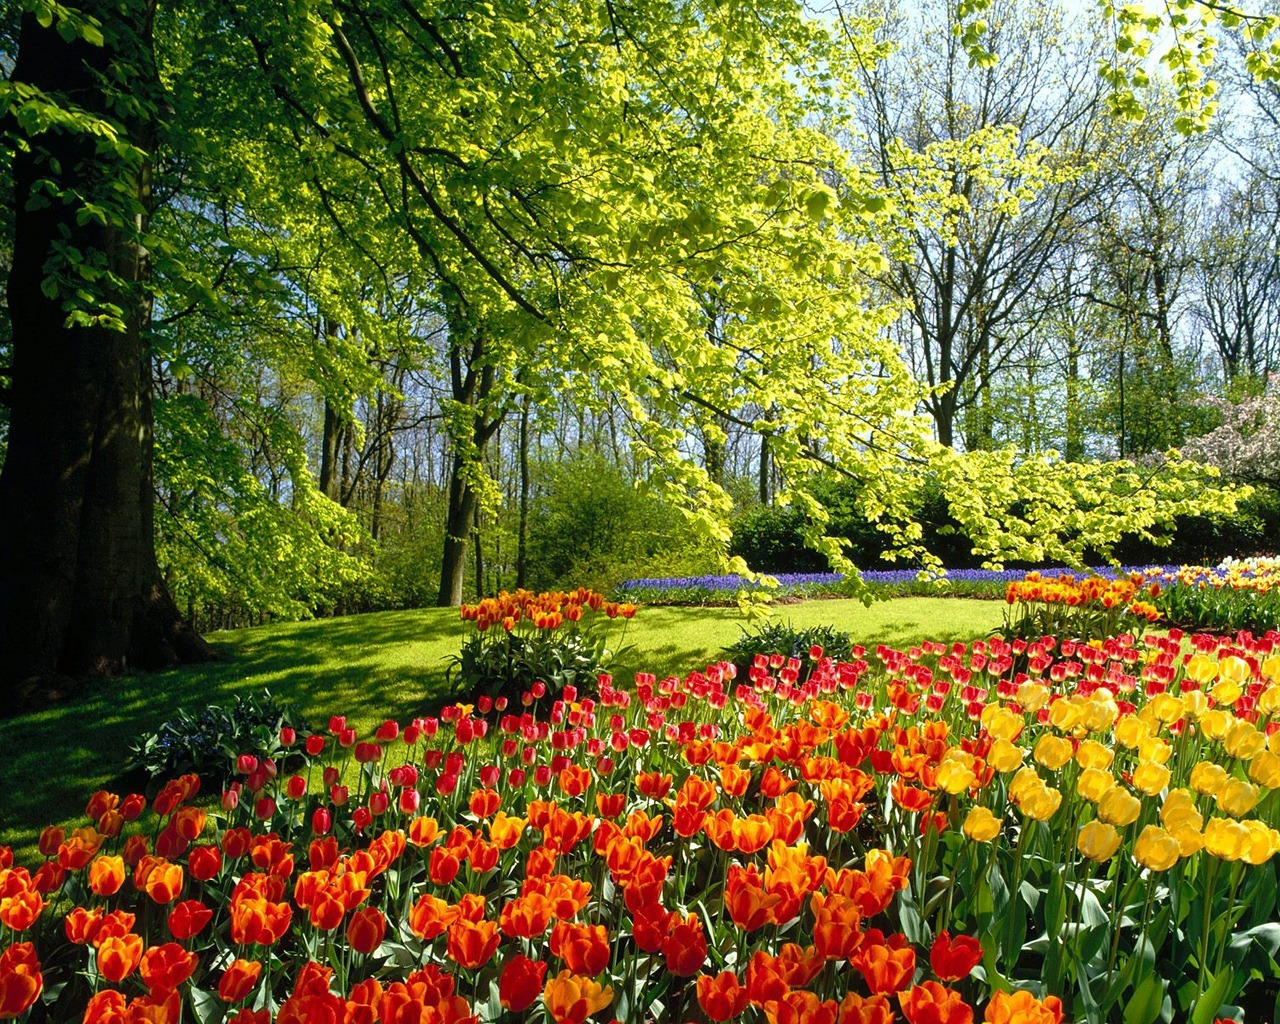 spring nature wallpaper - photo #16